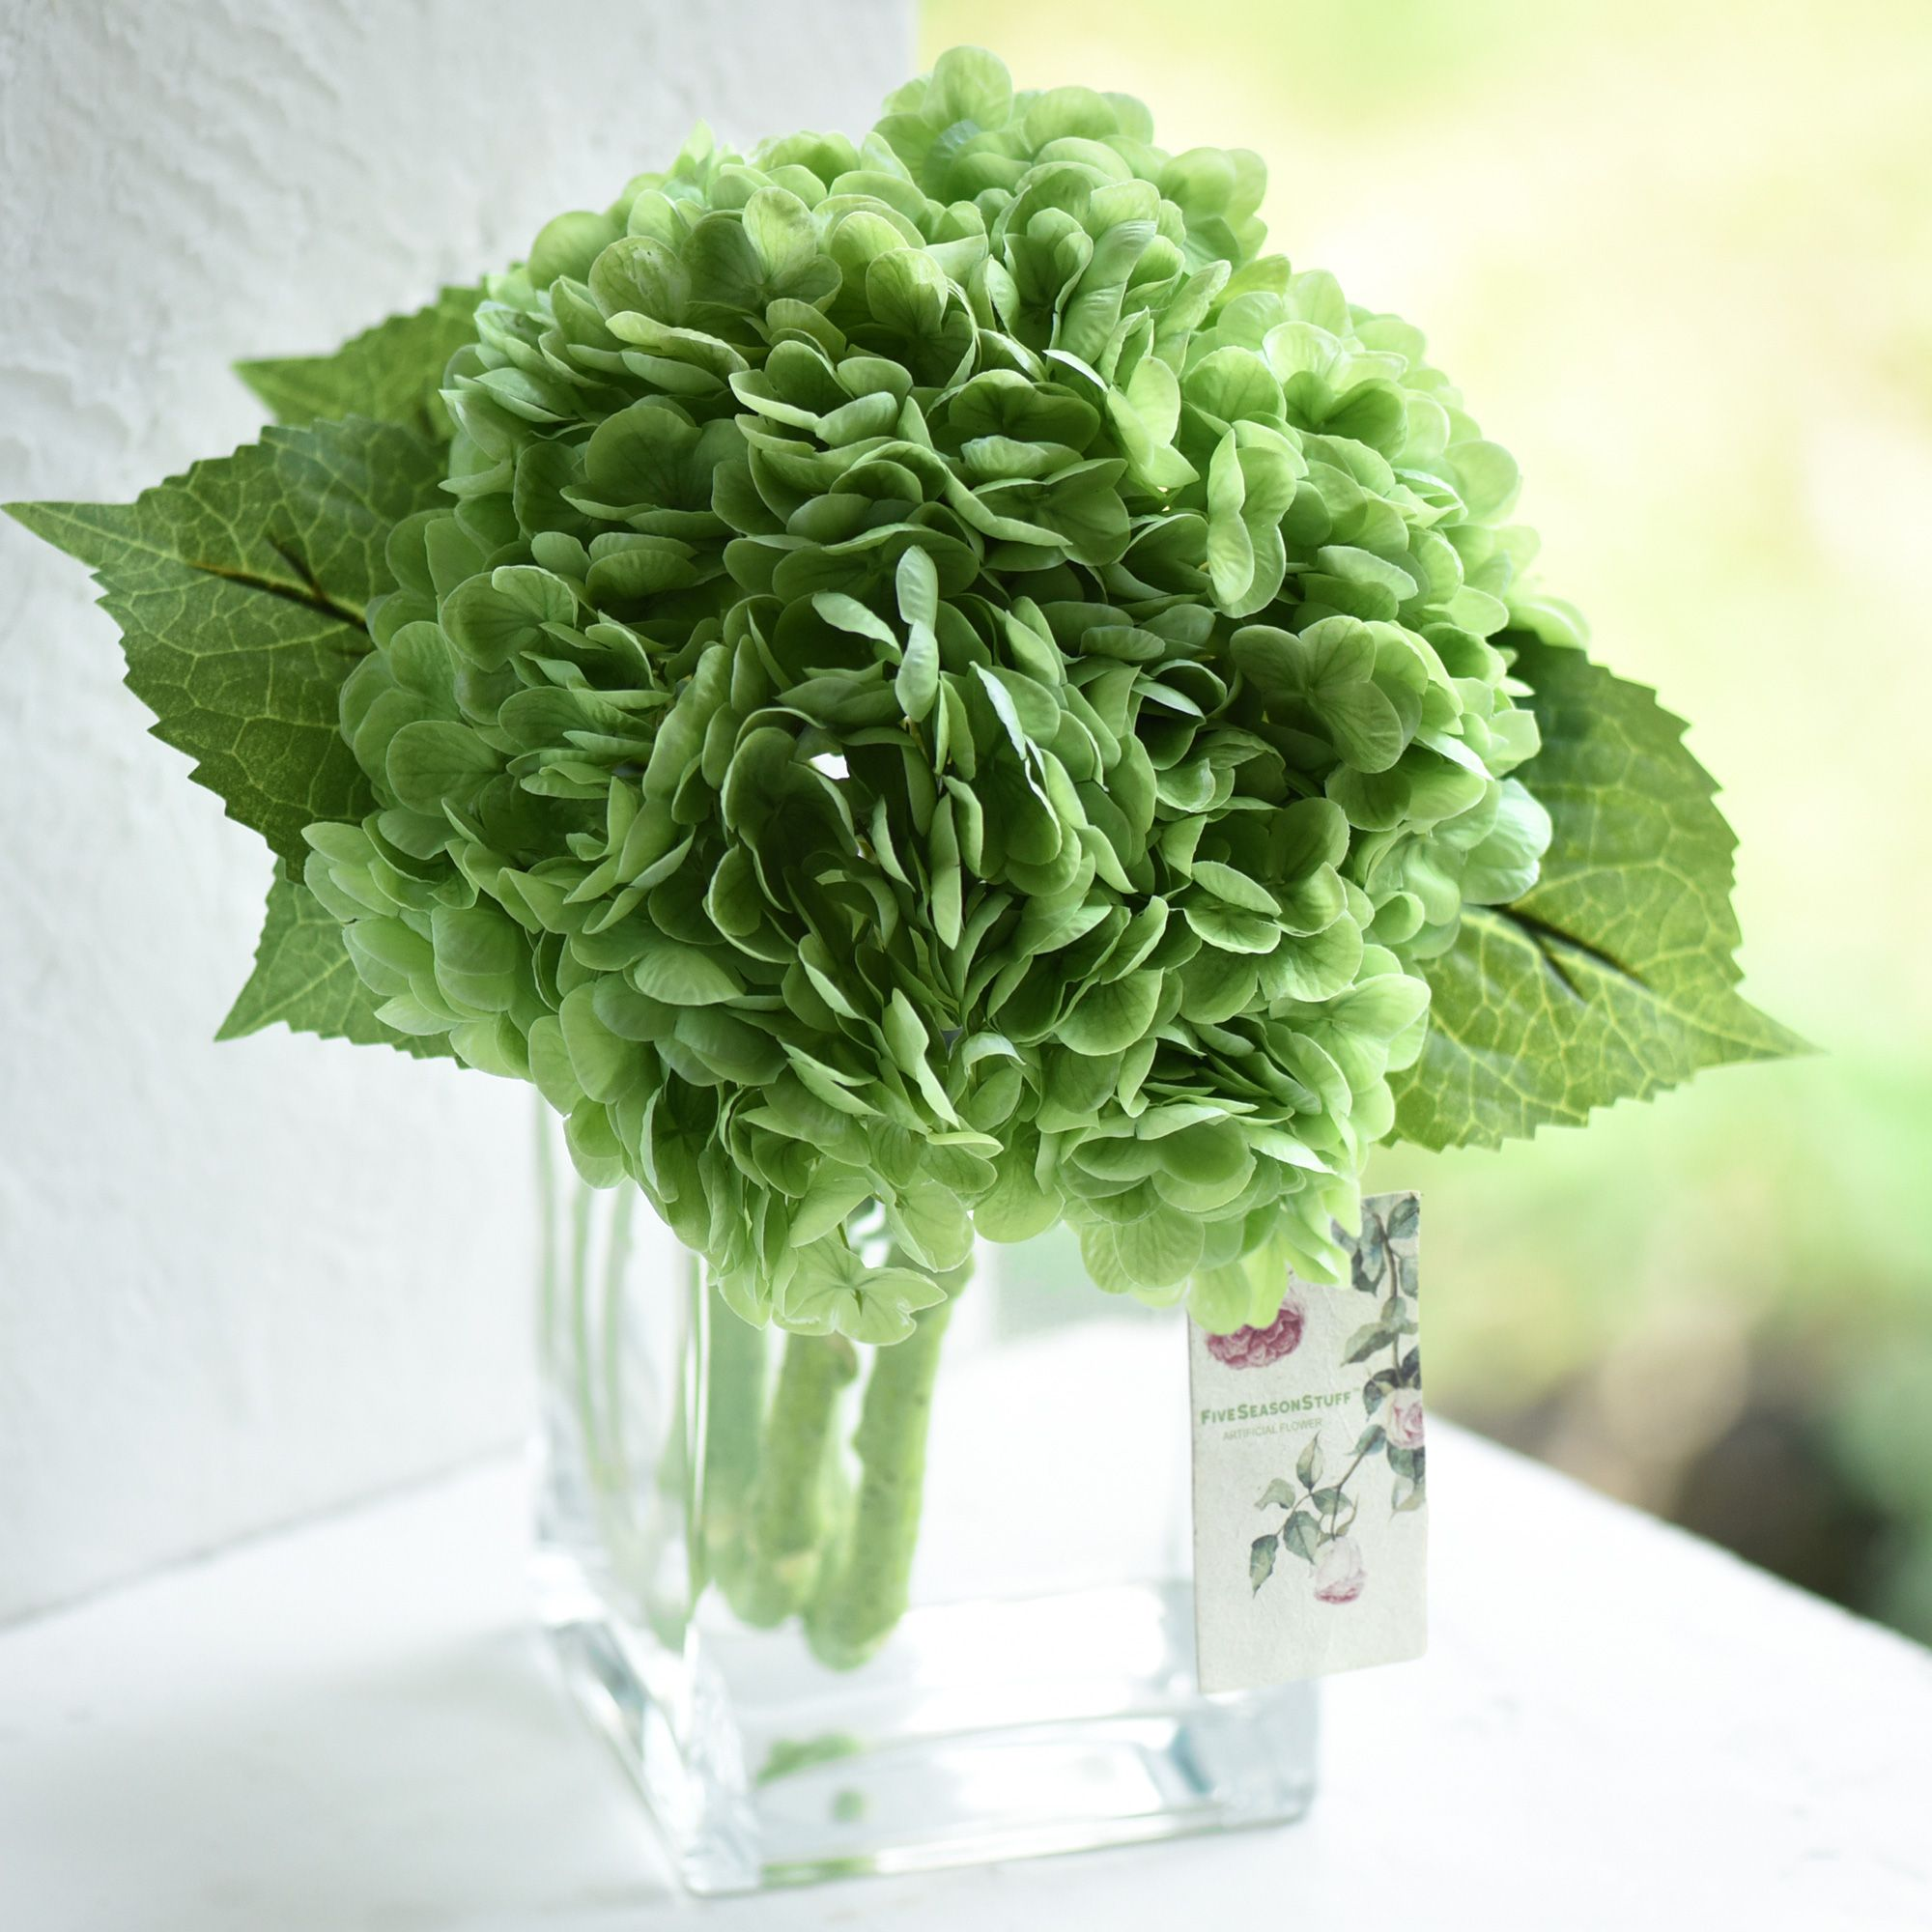 2 Stems Real Touch Petals And Leaves Artificial Hydrangea Flowers Long Stem Floral Arrangement For Wedding Bridal Party Home Decor Diy Floral Decoration Green In 2020 Artificial Hydrangea Flowers Artificial Flowers Hydrangea Flower